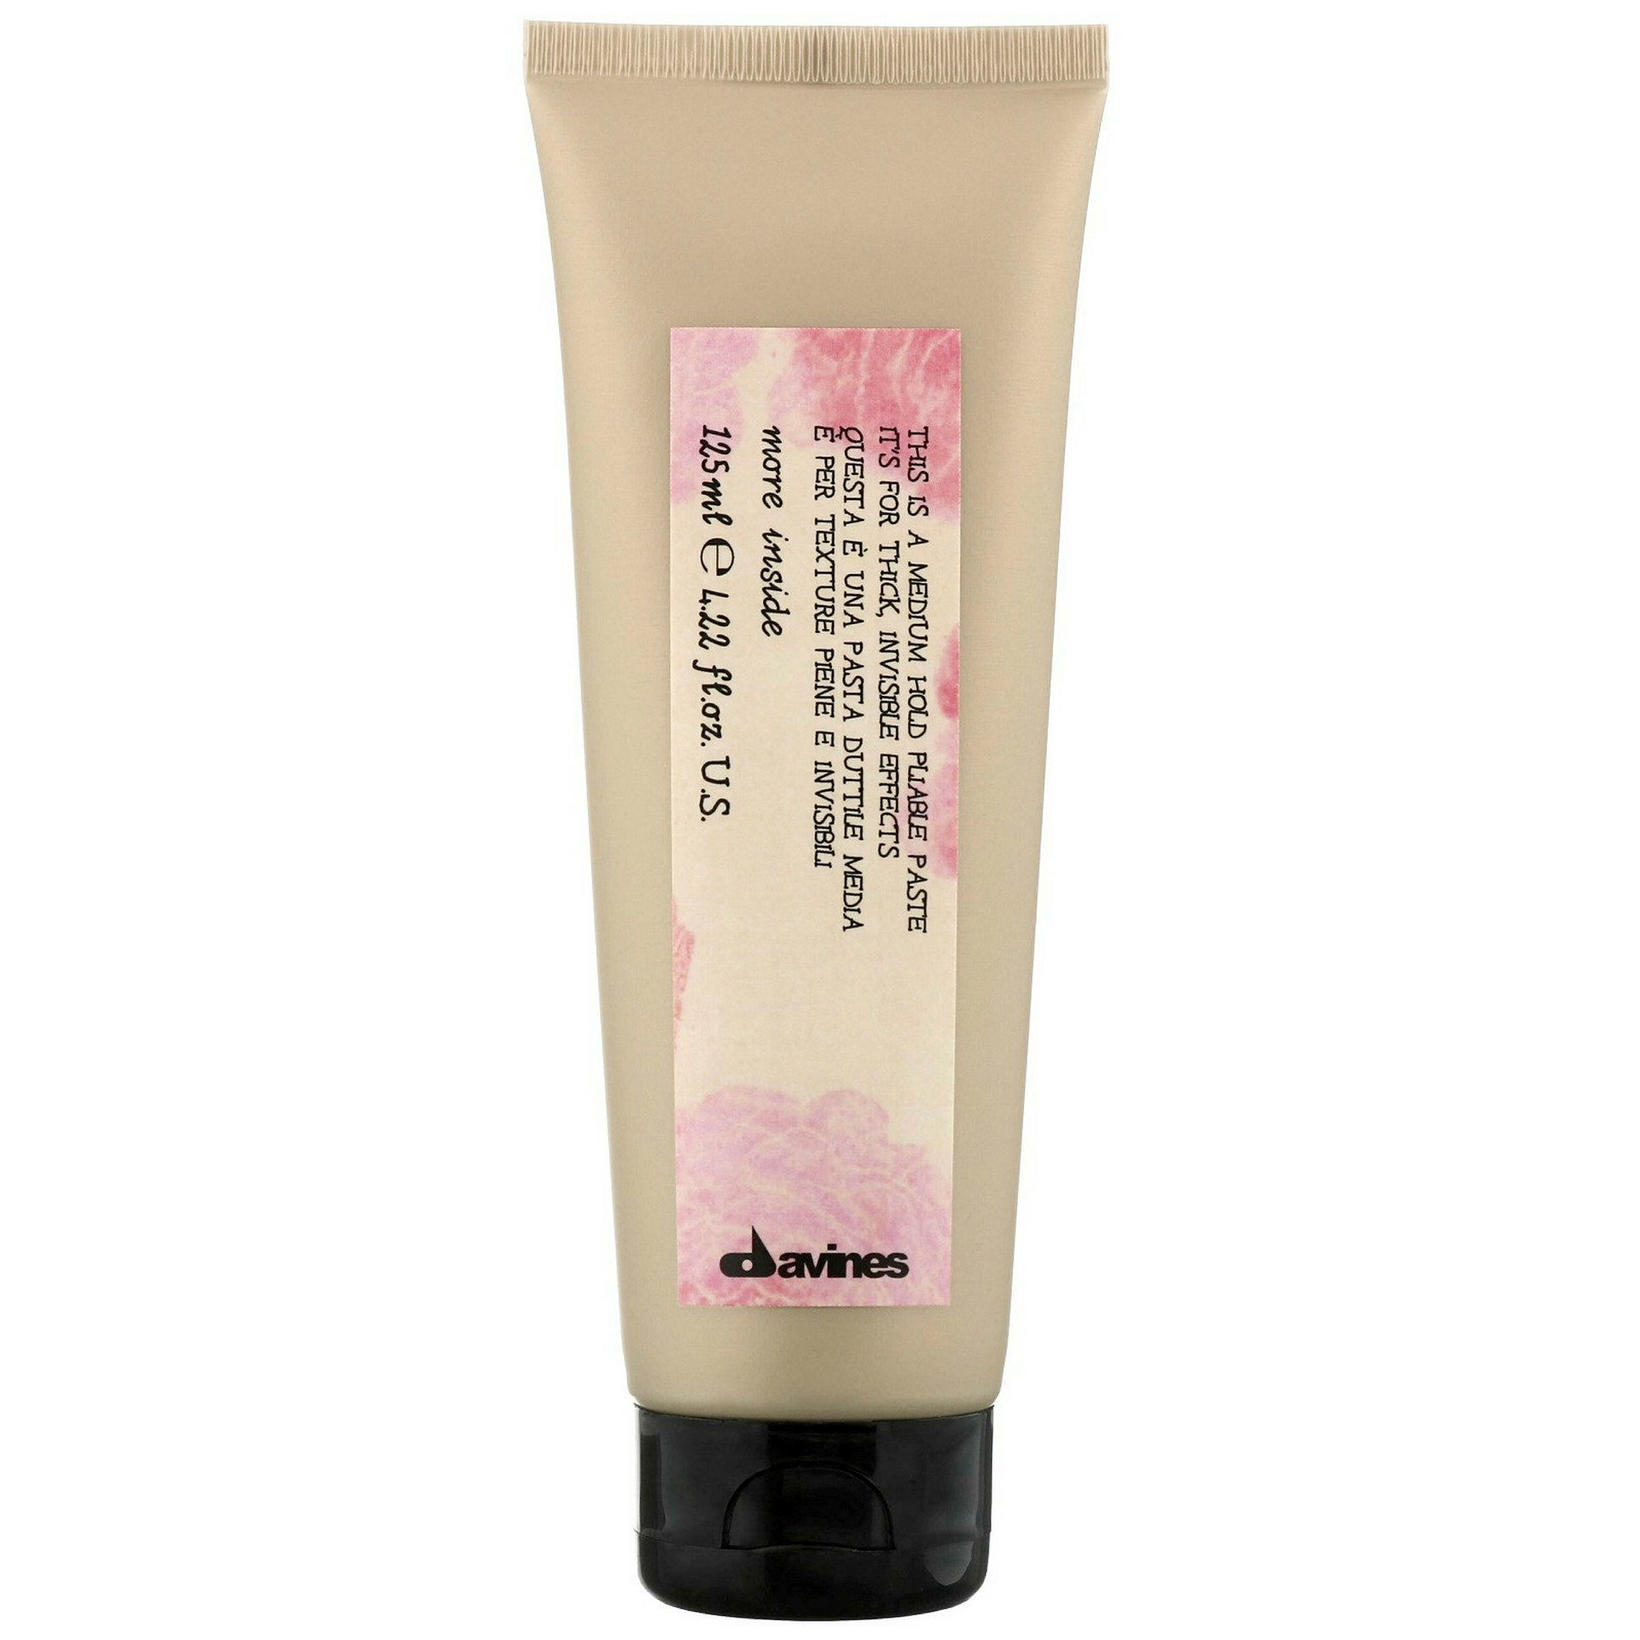 Davines This Is A Medium Hold Pliable Paste.